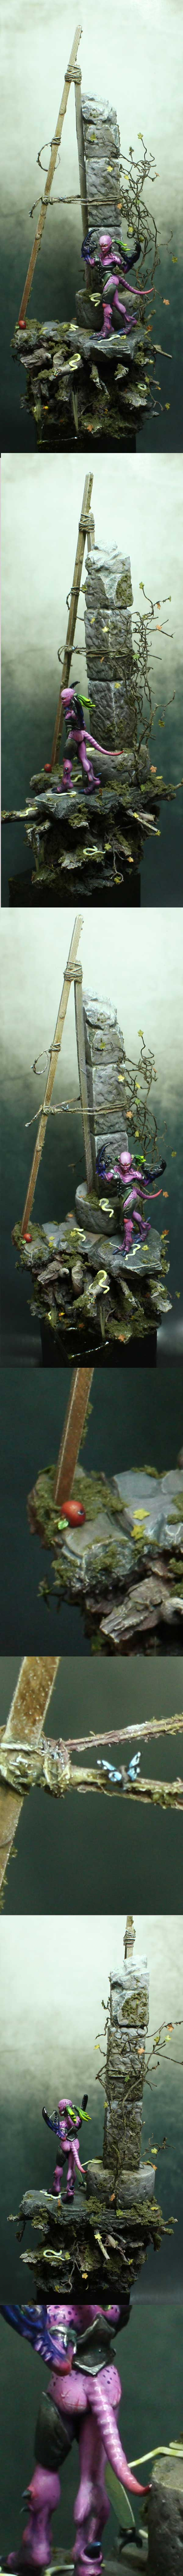 Daemonette of Slaanesh Diorama